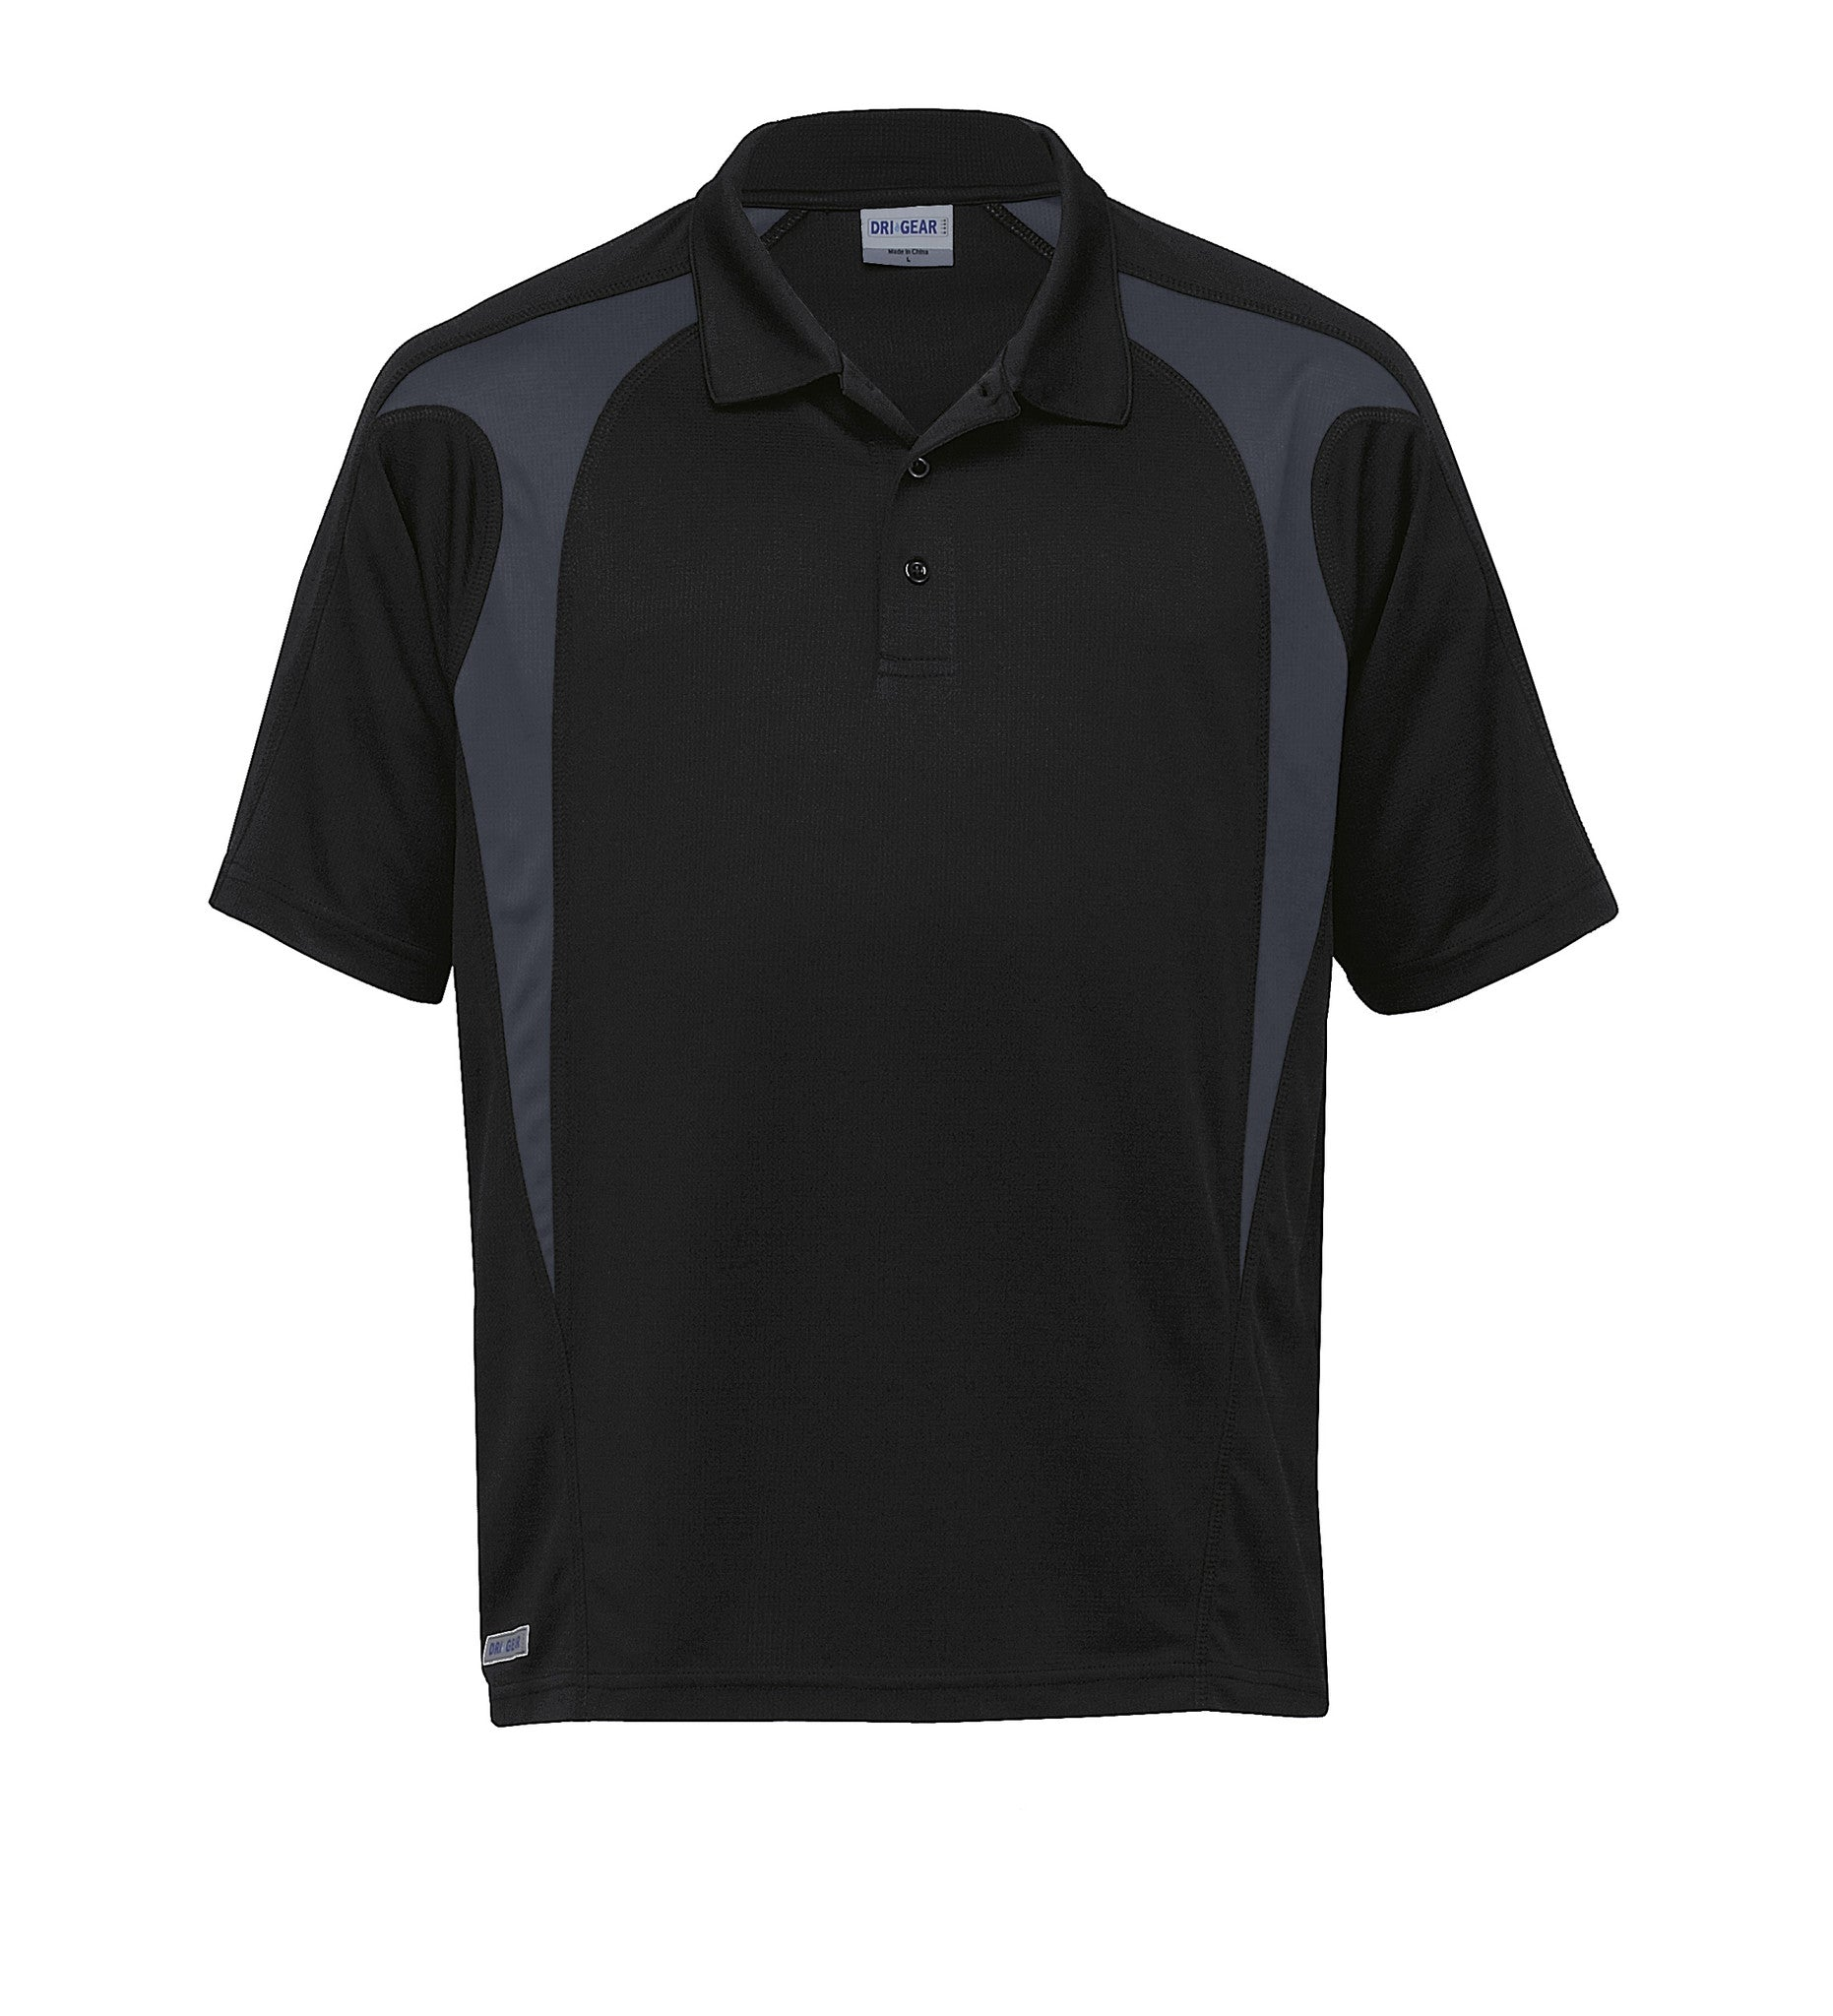 Gear For Life-Gear For Life  Dri Gear Spliced Zenith Polo(1st 8 Colours)--Corporate Apparel Online - 1